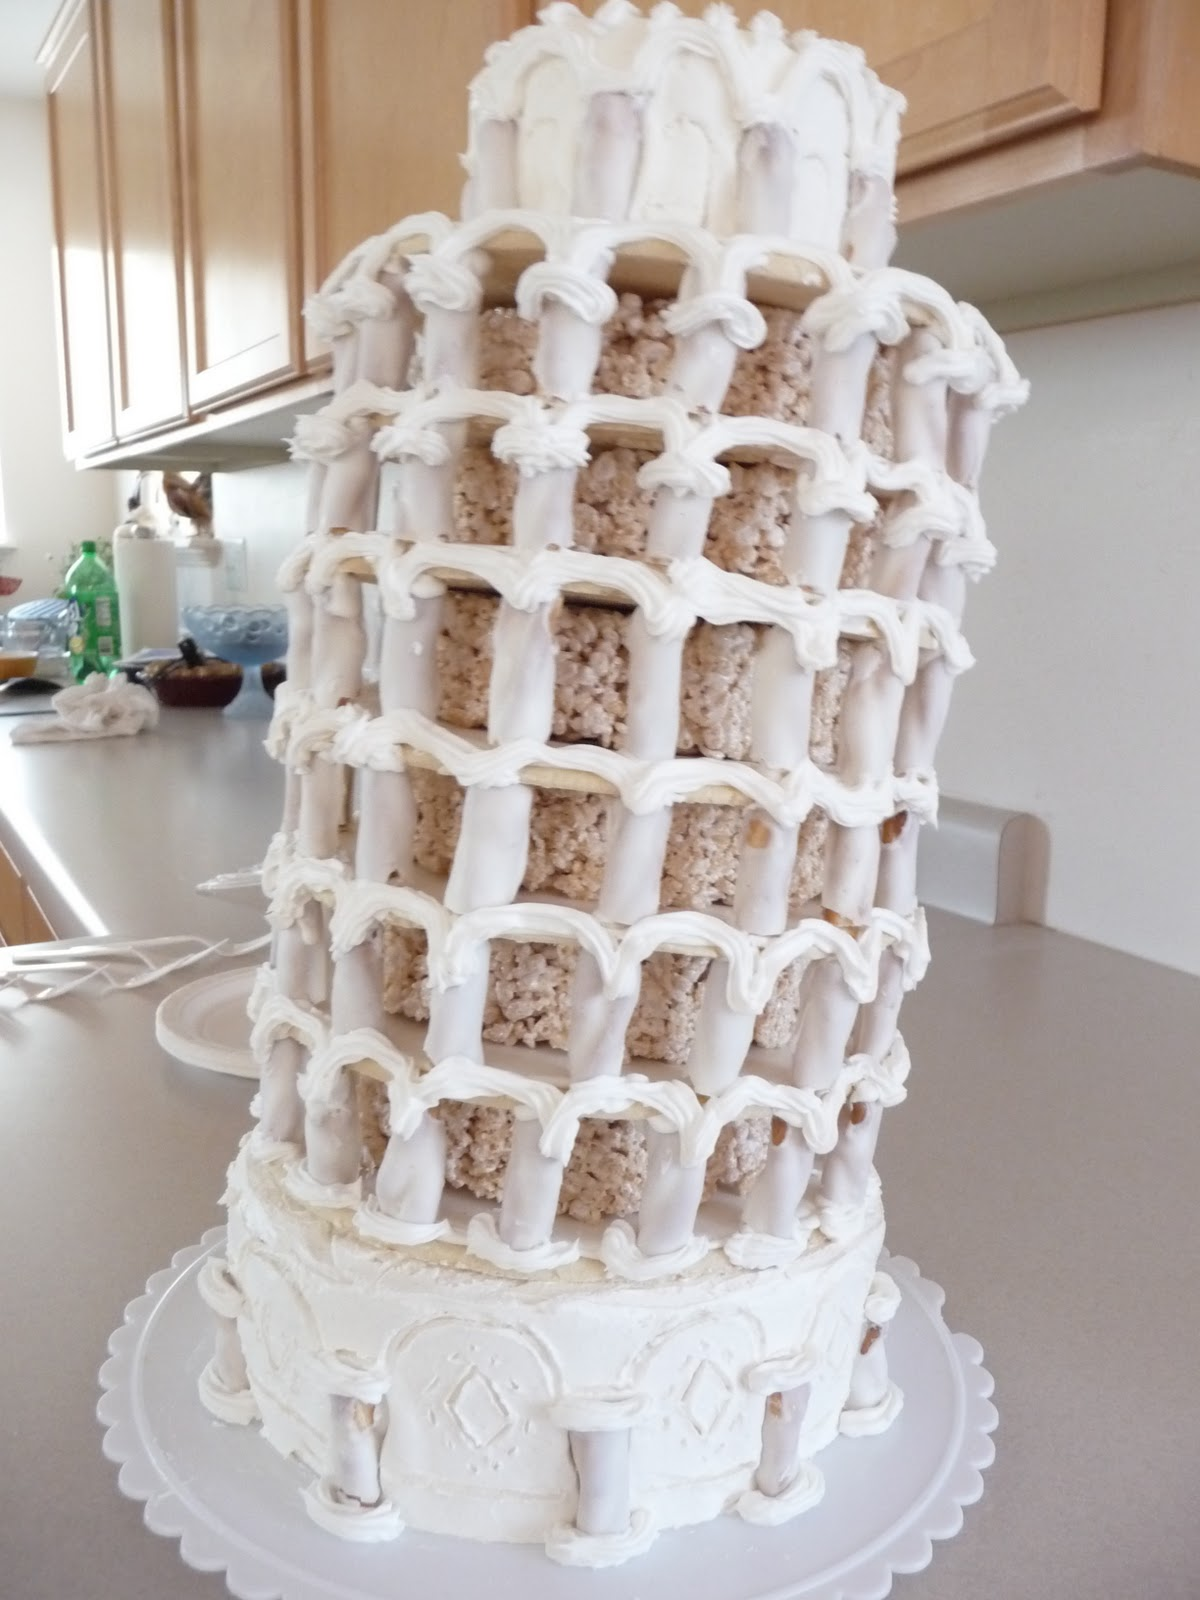 The Family Mixing Bowl The Leaning Tower Of Pisa Cake